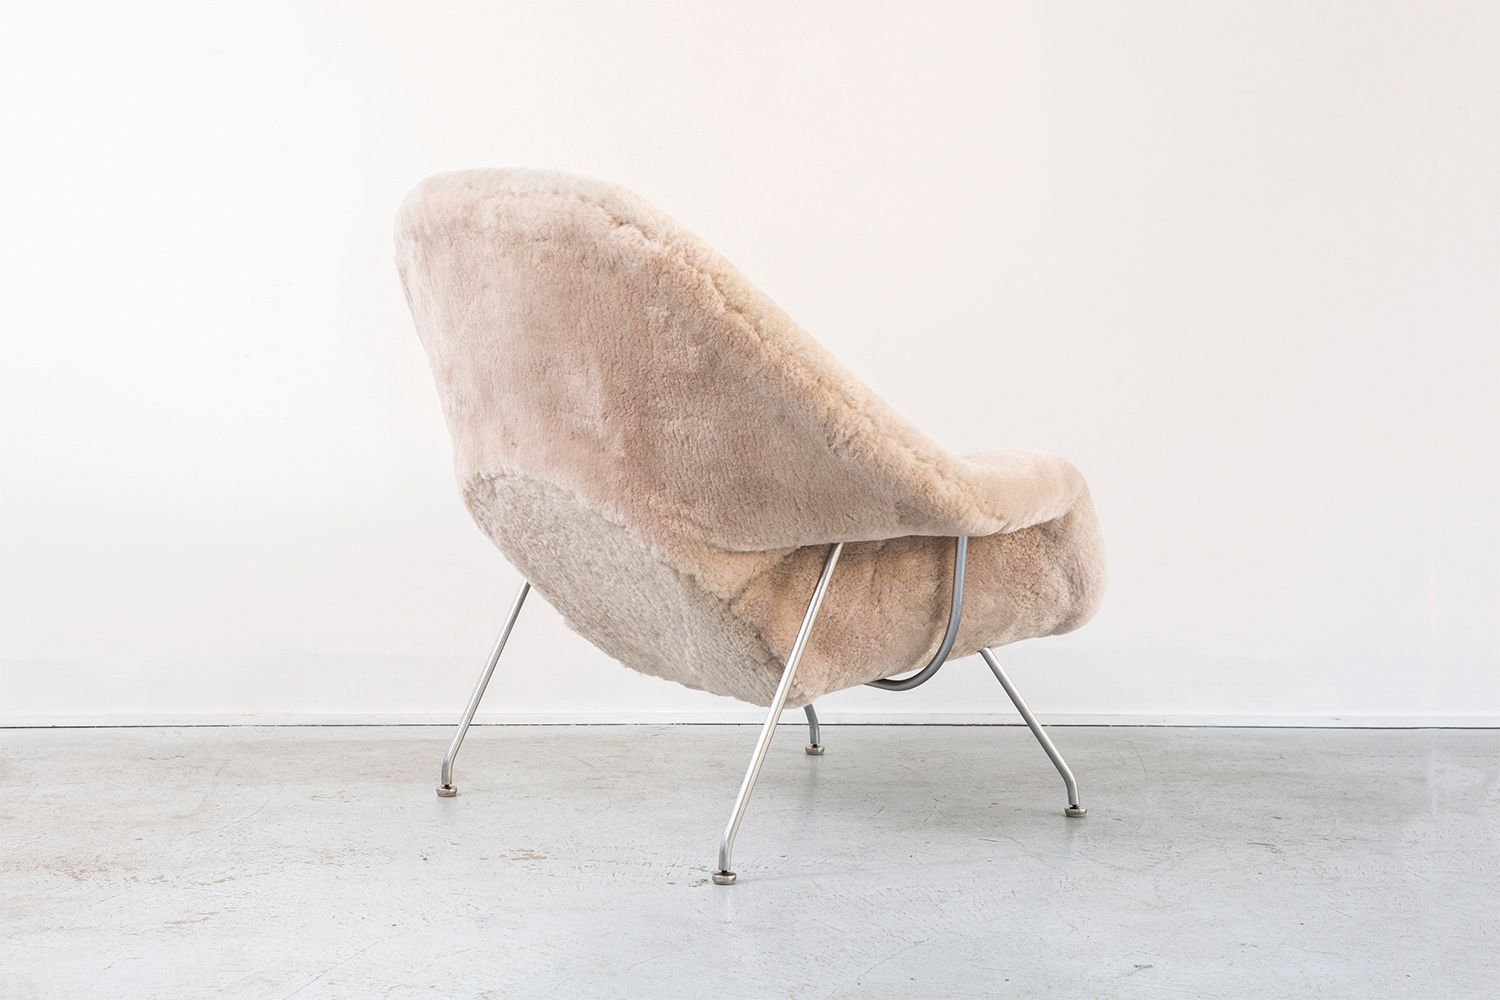 Womb chairs by eero saarinen for knoll 1960s set of 2 for sale at pamono - Vintage womb chair for sale ...